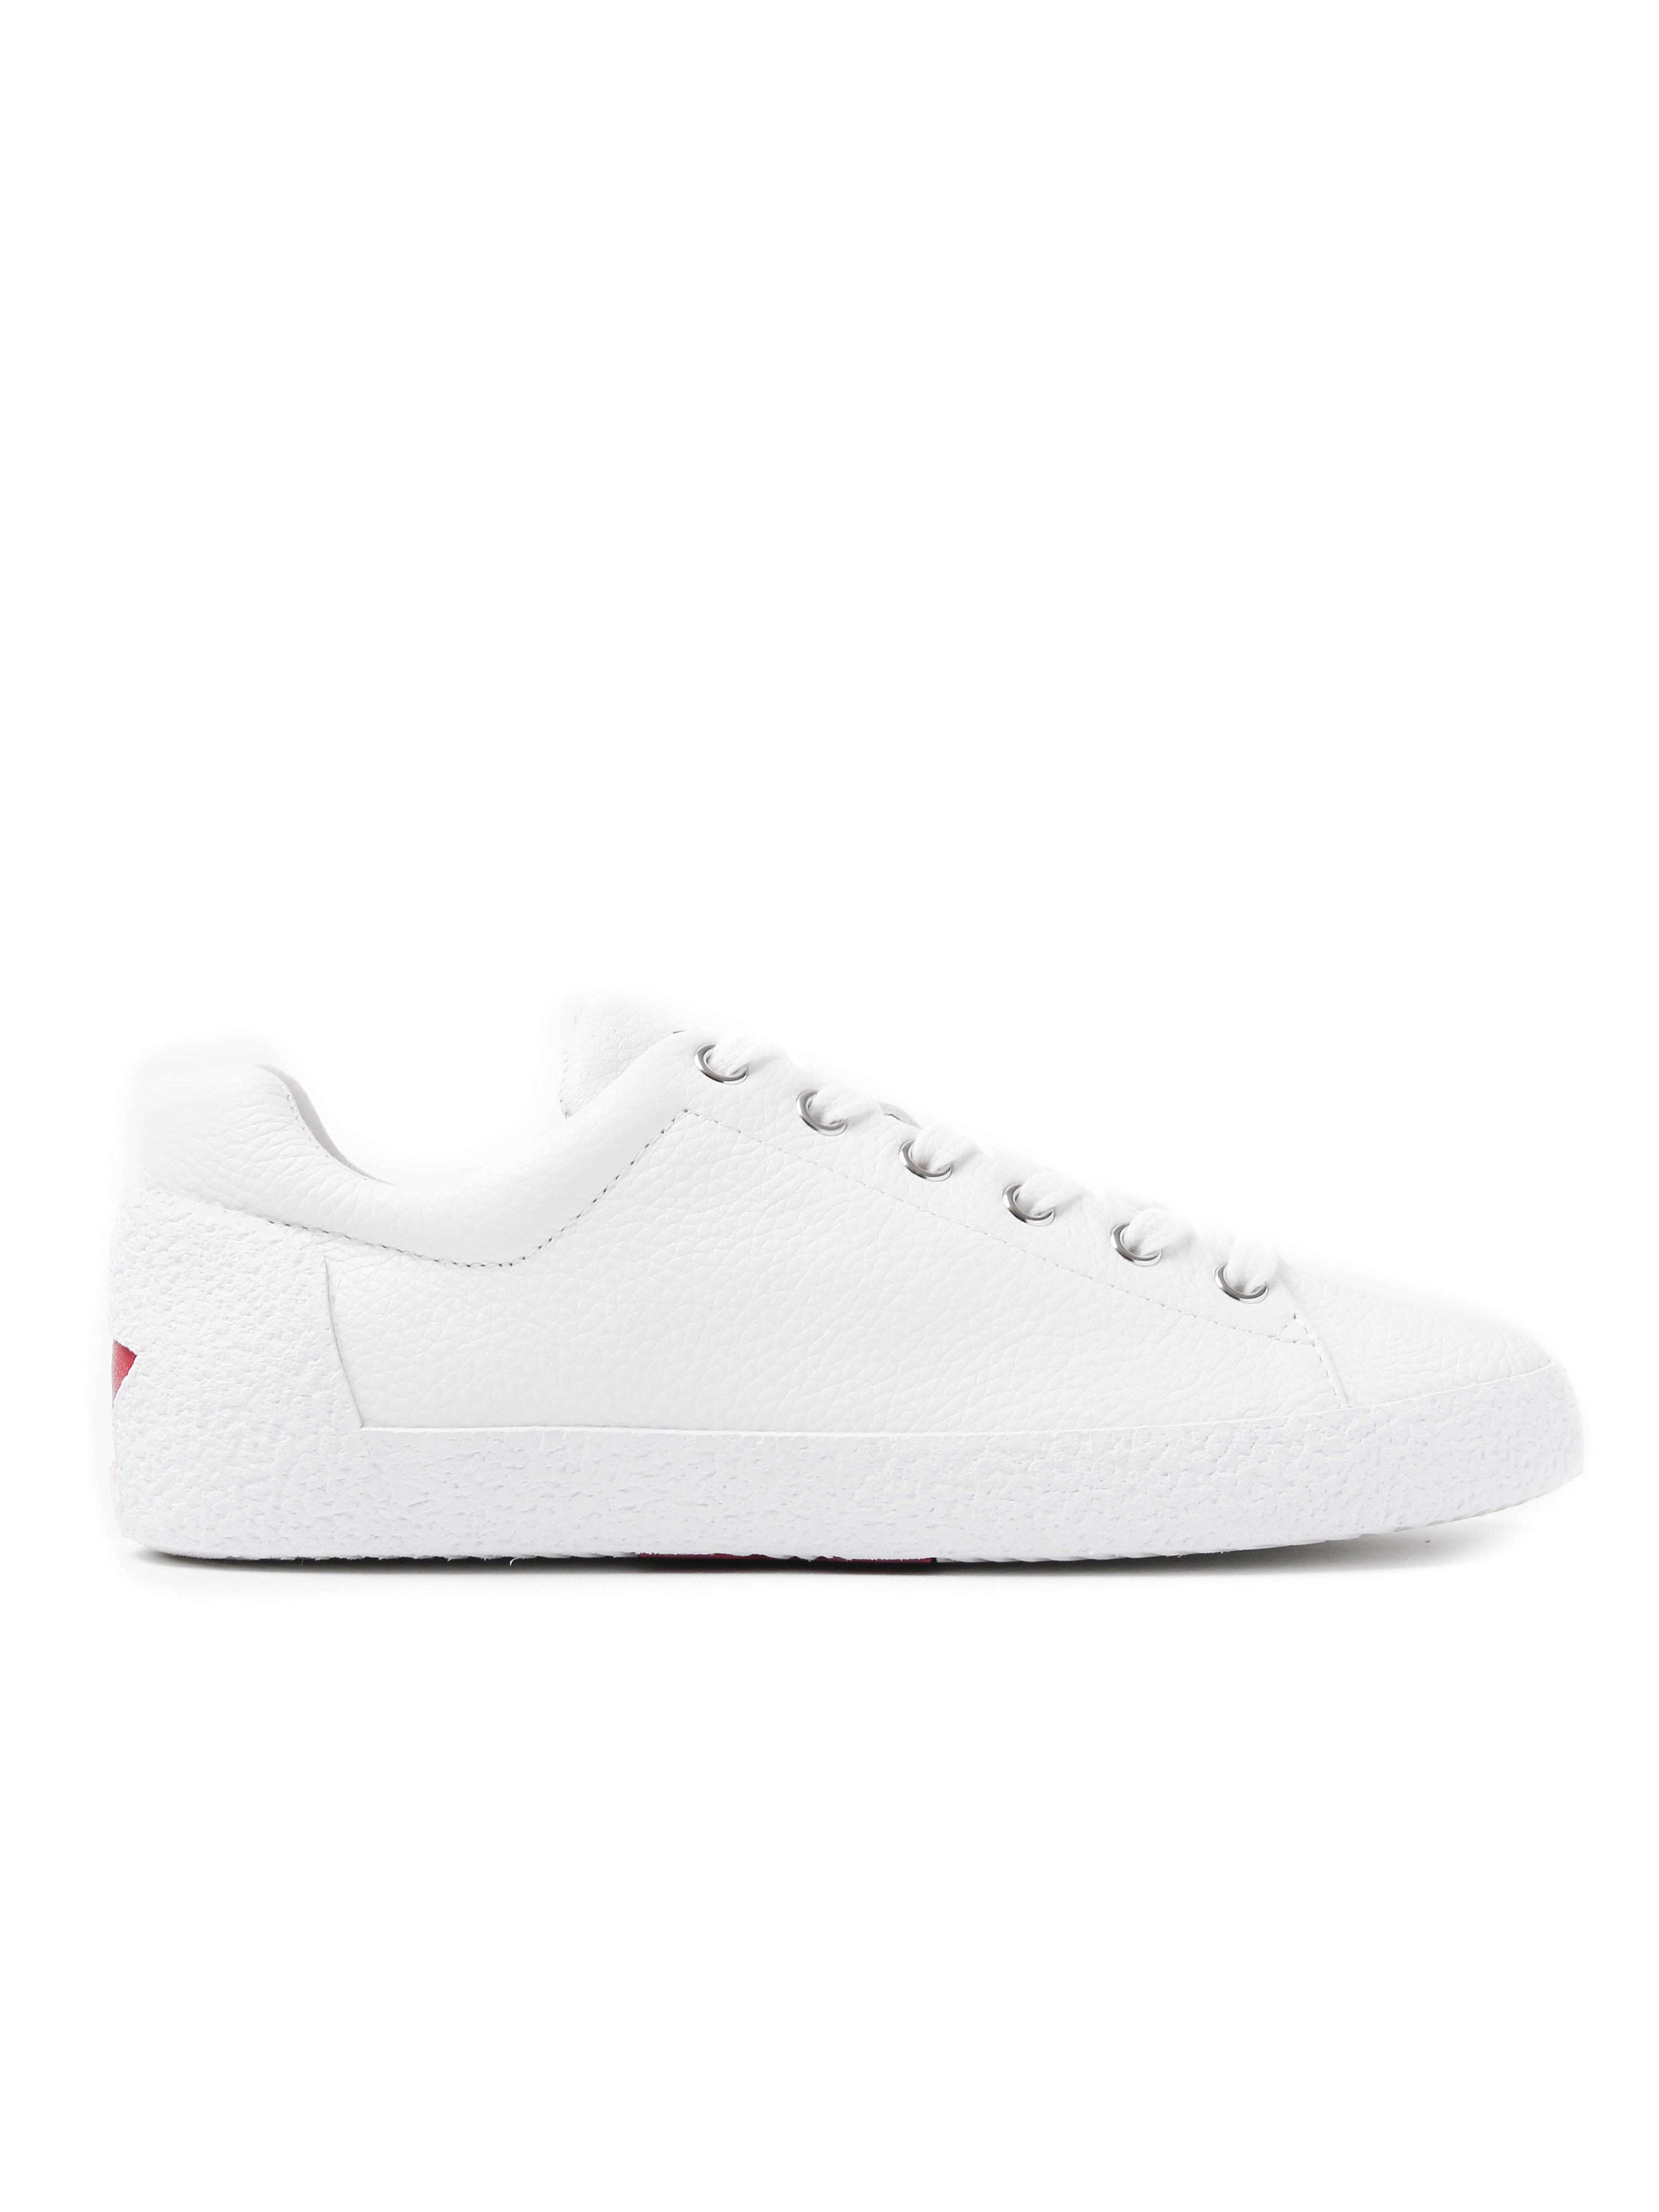 Ash Women's Nicky Textured Leather Trainers - White